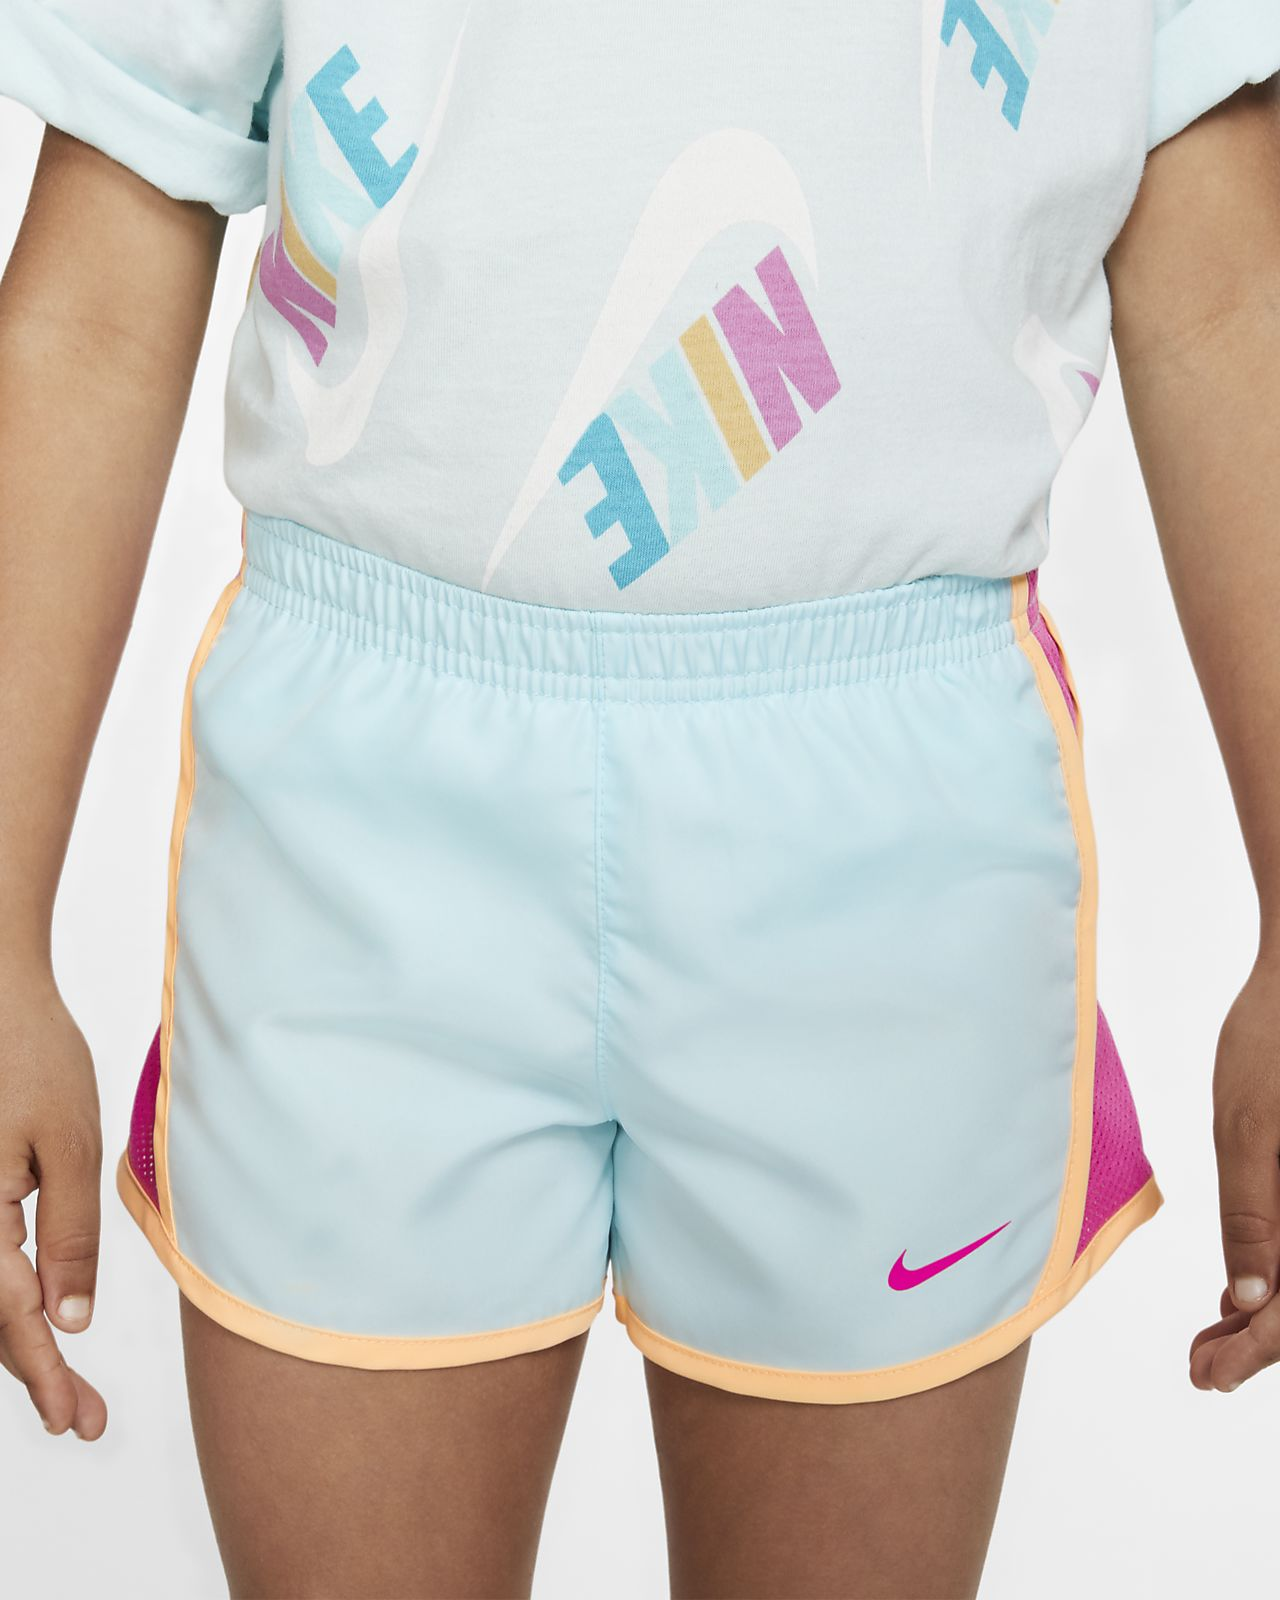 Nike Dri-FIT Tempo Little Kids' Running Shorts